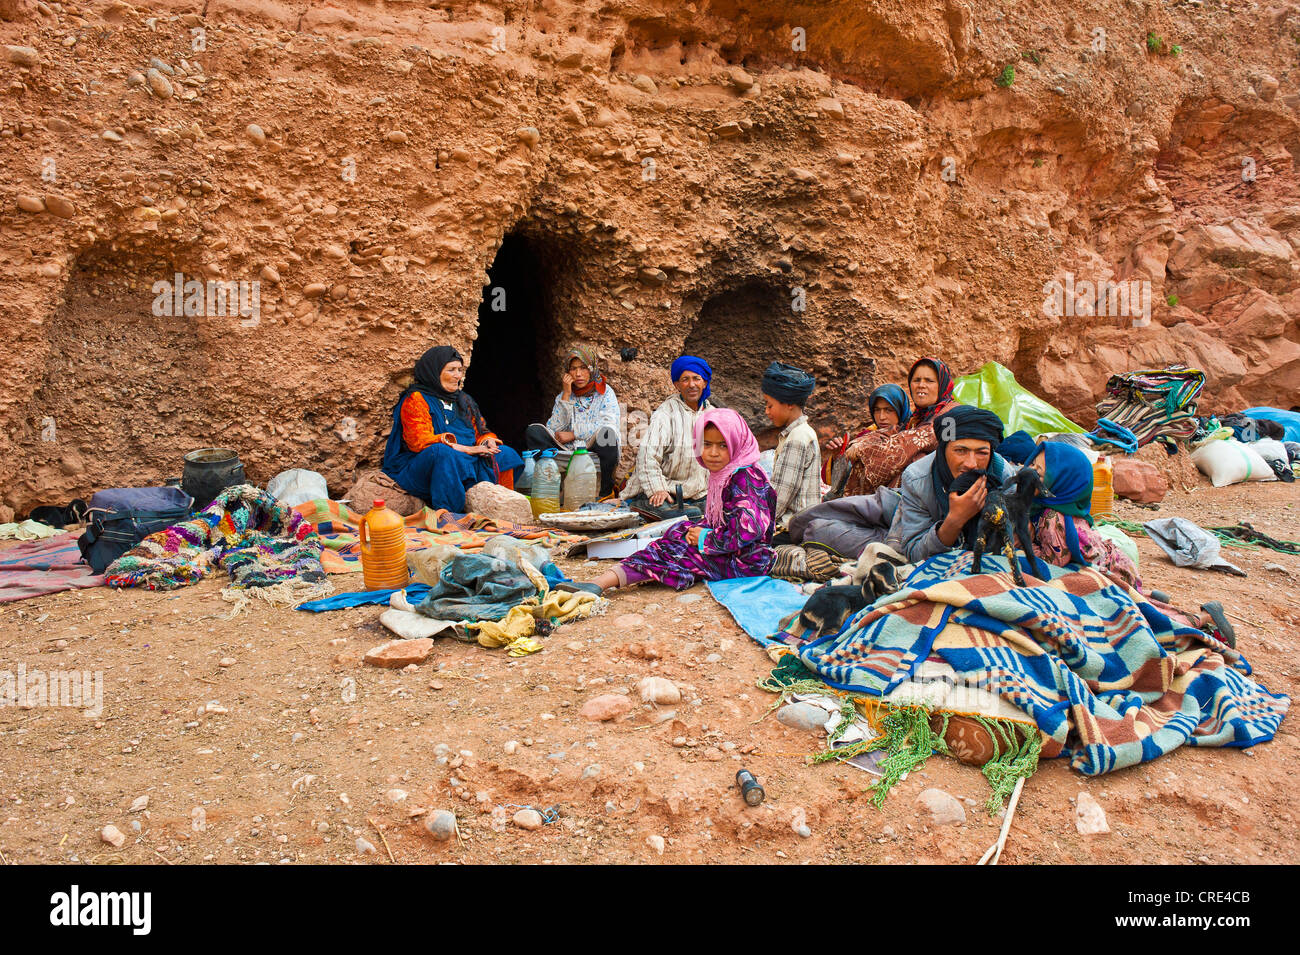 Nomadic cave-dwellers, Berbers, a family with several children sitting in front of their cave-dwelling, Dades Valley - Stock Image